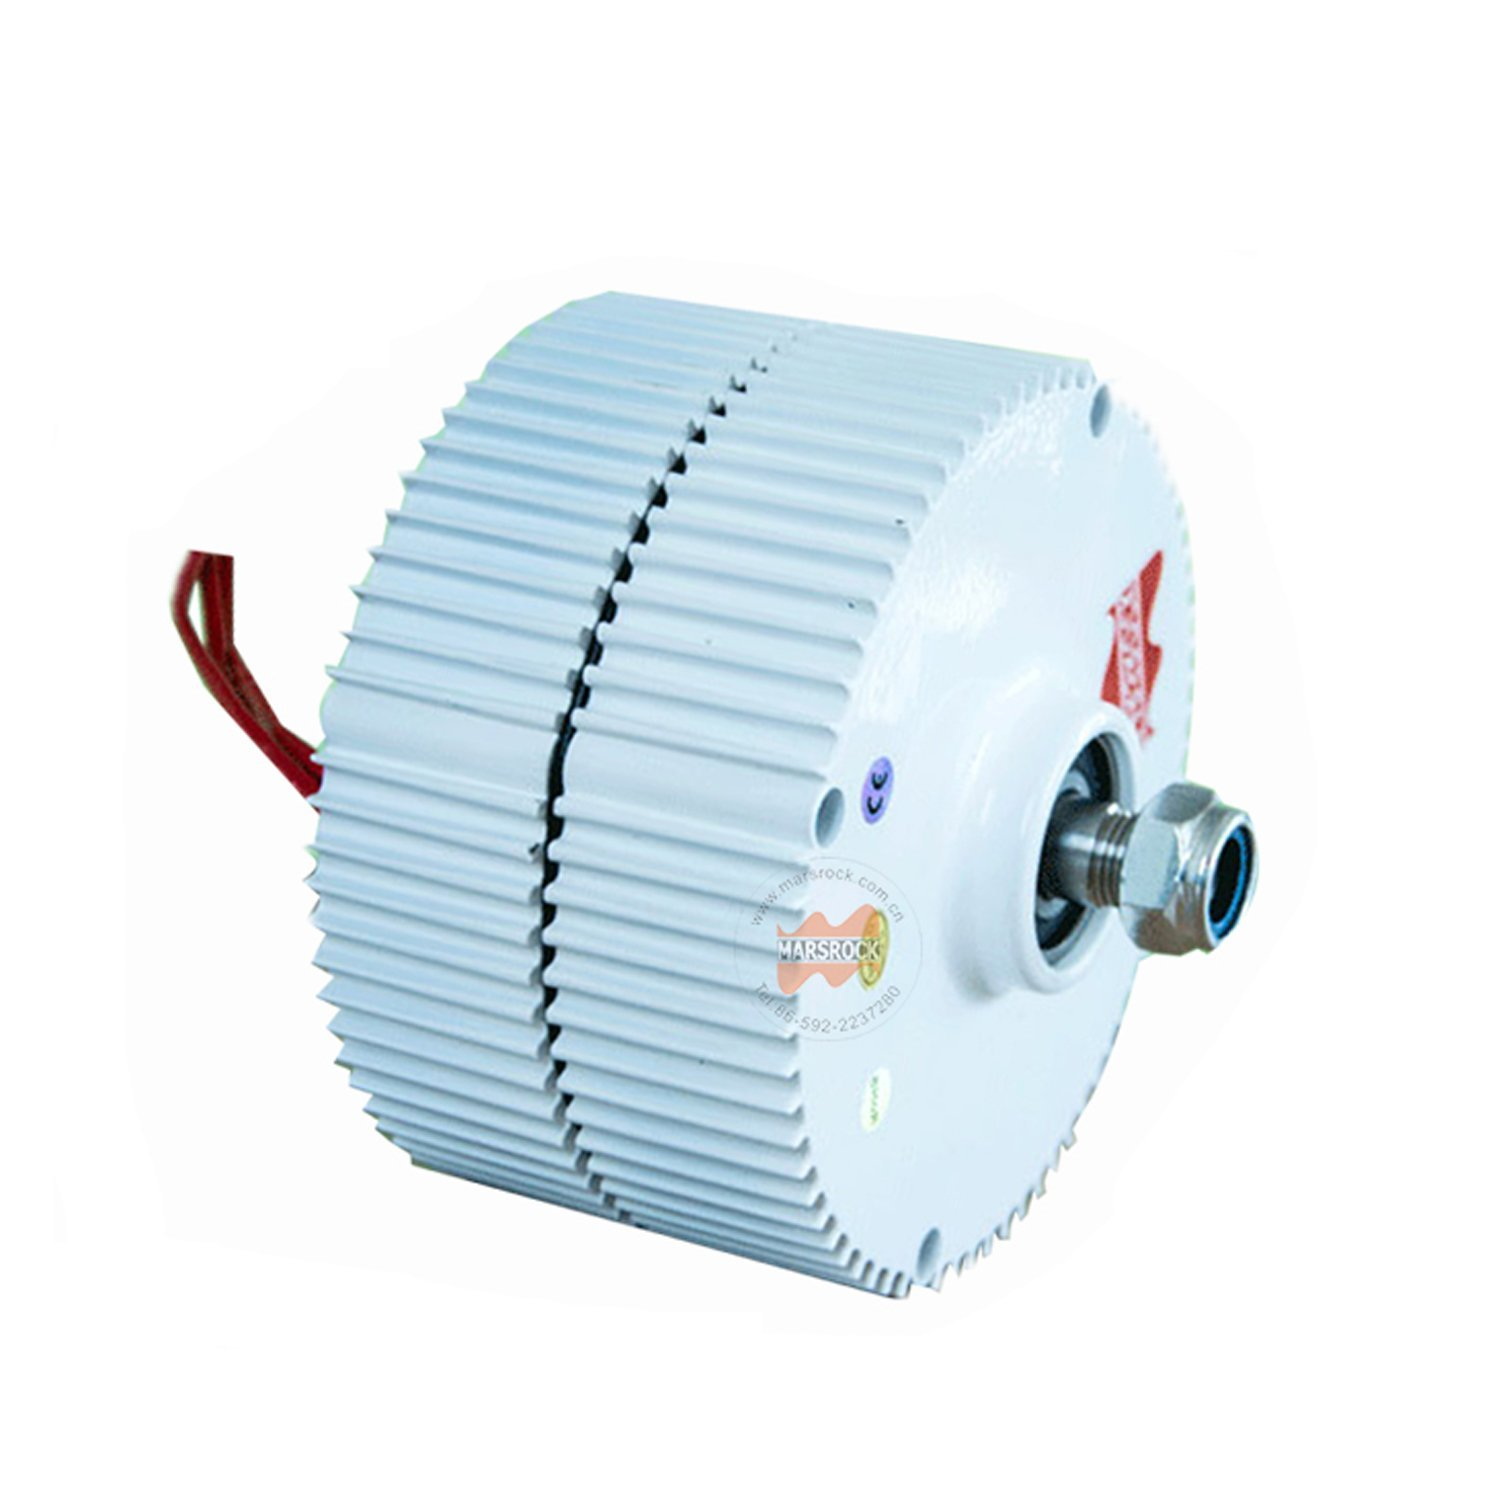 MarsRock 400W 1000r/m 12/24/48V Permanent Magnet Generator AC Alternator for Vertical Wind Turbine Generator 24V